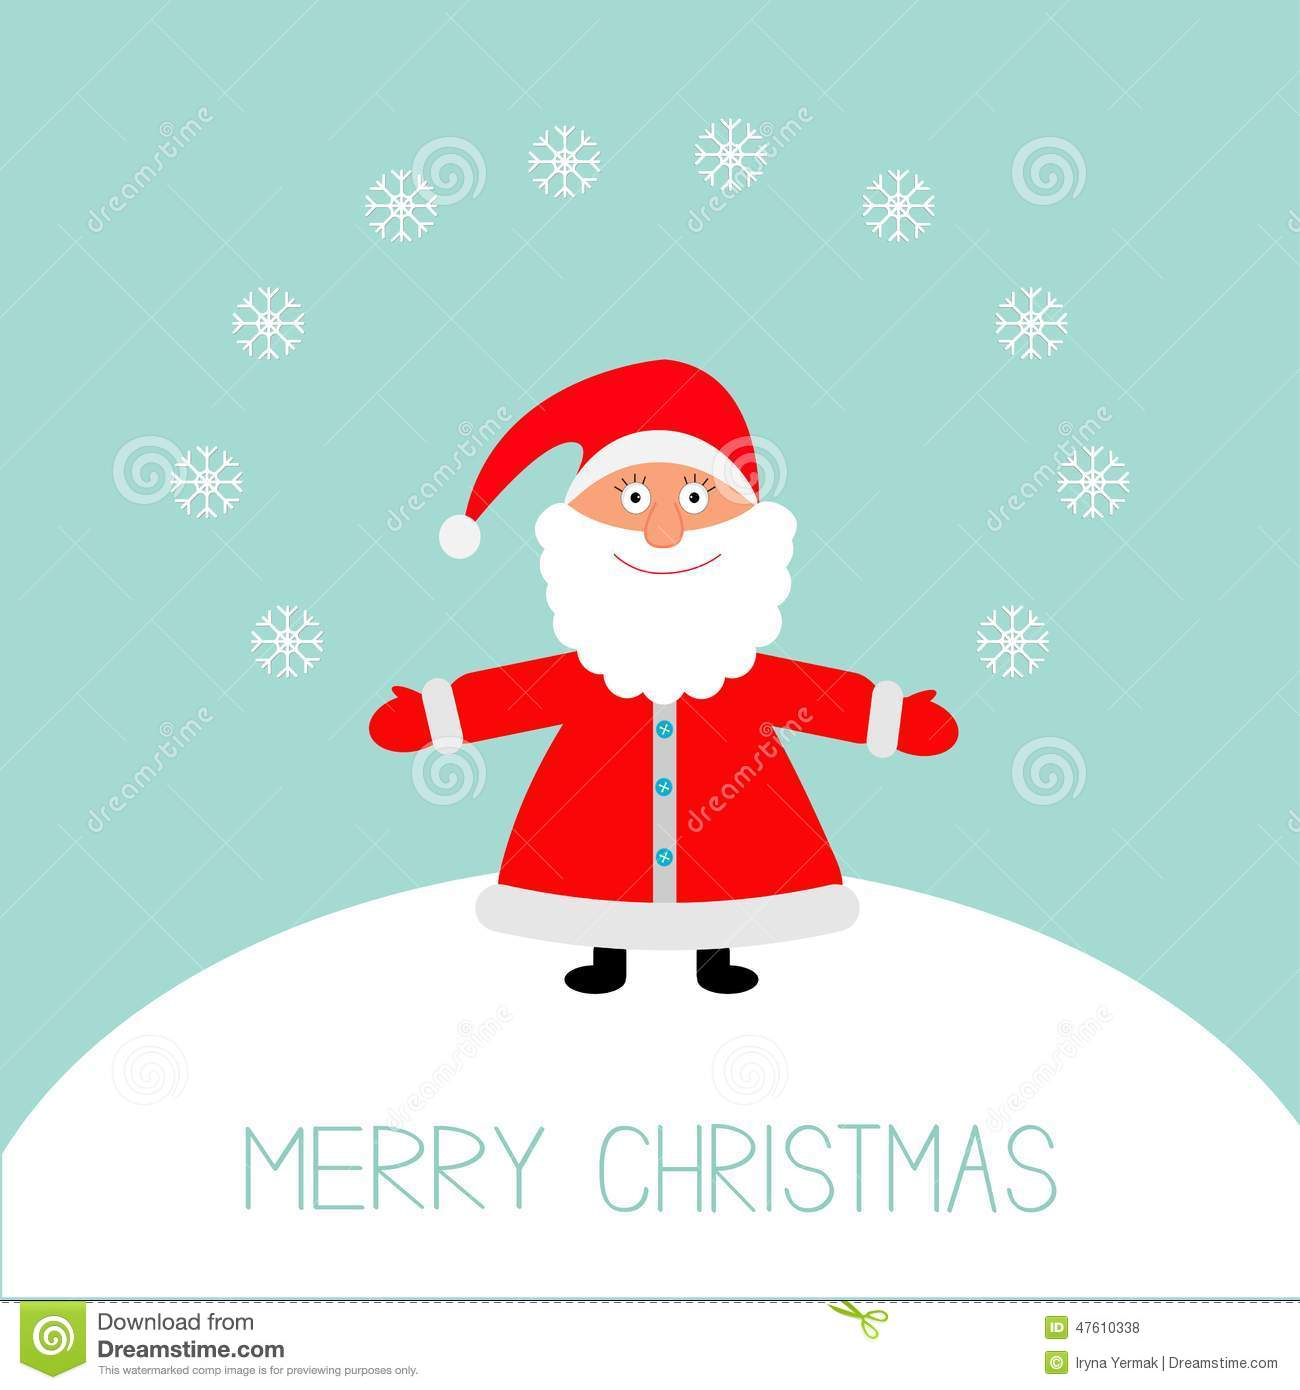 Cartoon Santa Claus And Snowflakes On The Snowhill. Merry Christmas Card Flat Design Stock ...